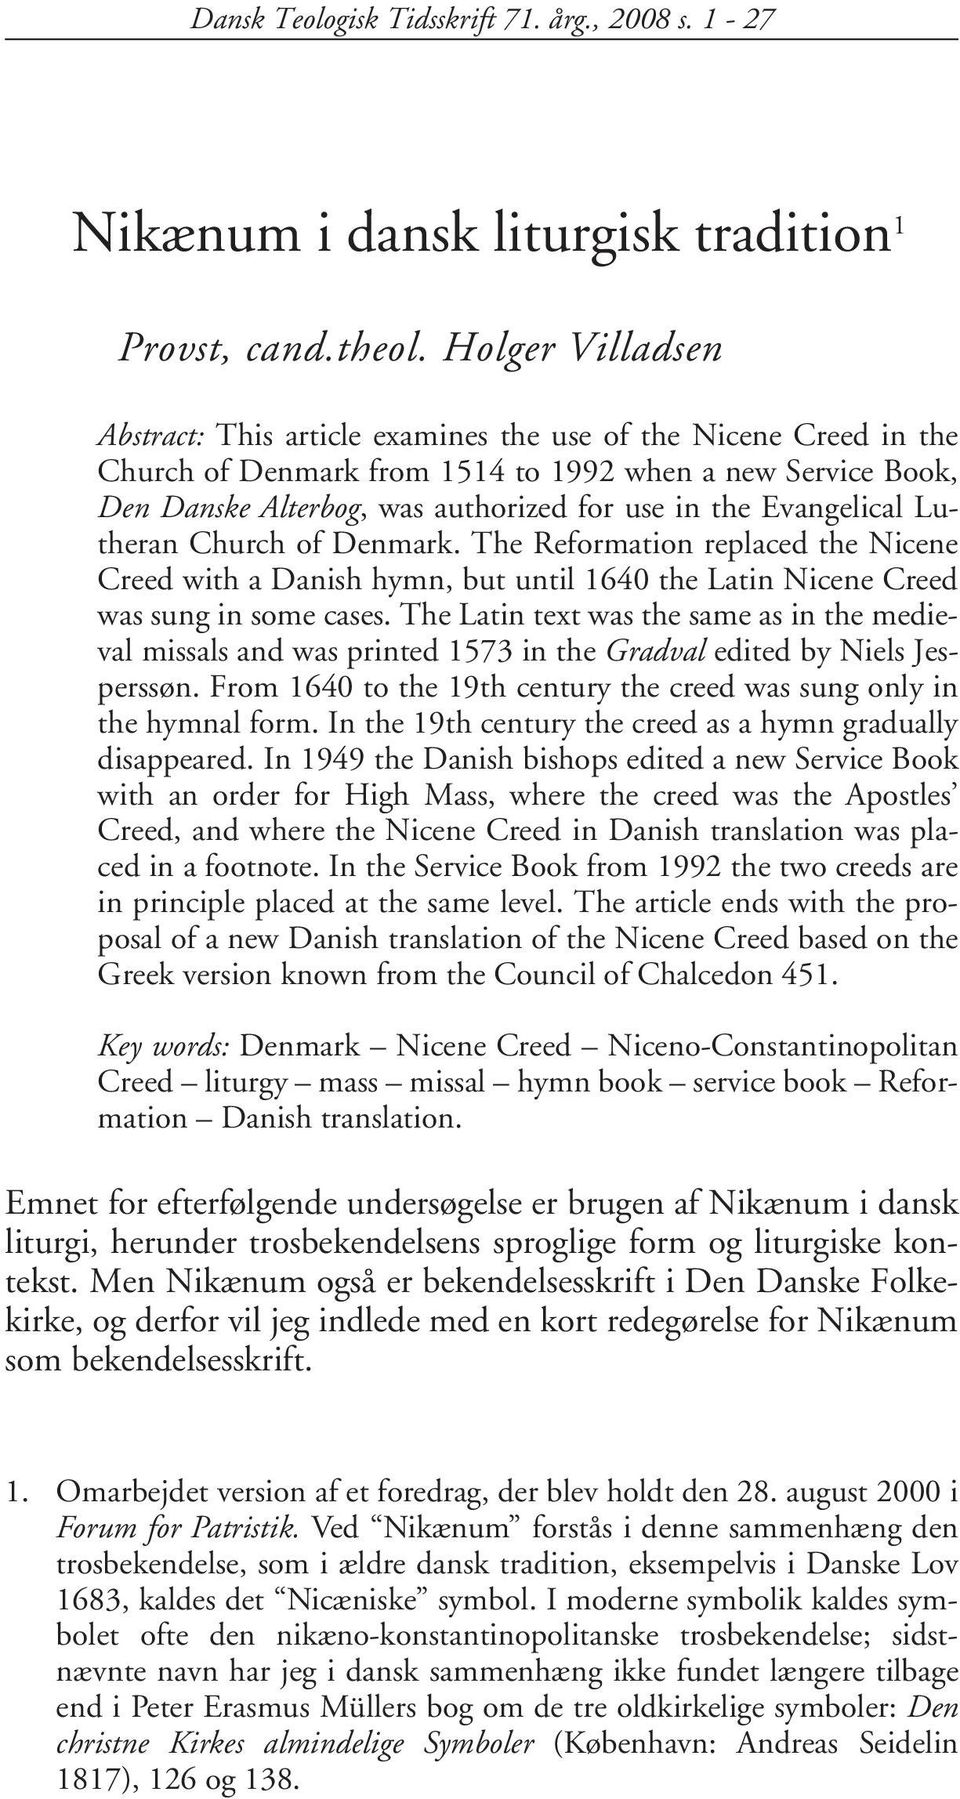 Evangelical Lutheran Church of Denmark. The Reformation replaced the Nicene Creed with a Danish hymn, but until 1640 the Latin Nicene Creed was sung in some cases.